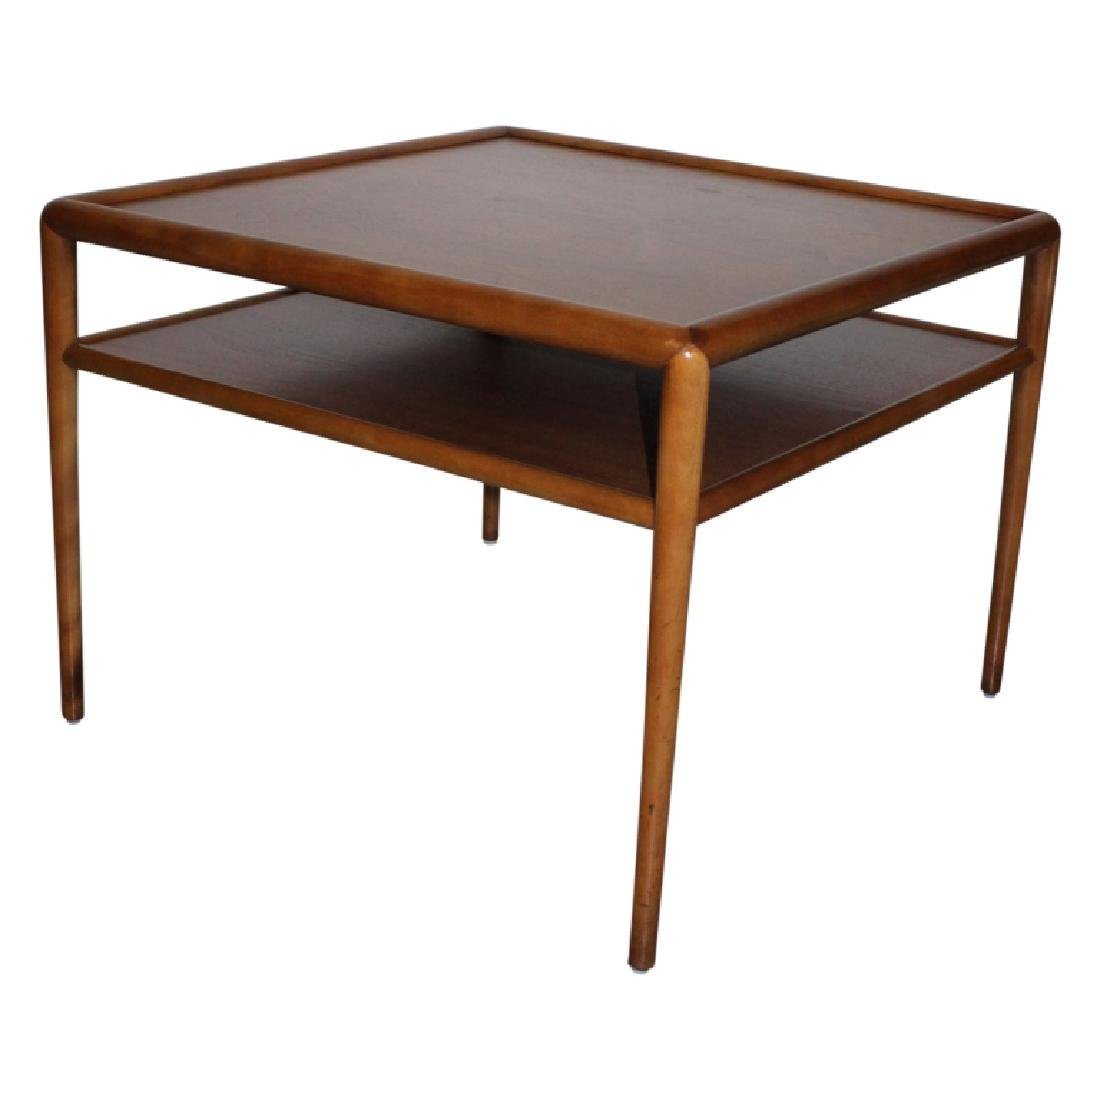 Mid Century Modern Coffee Table by Robsjohn-Gibbings